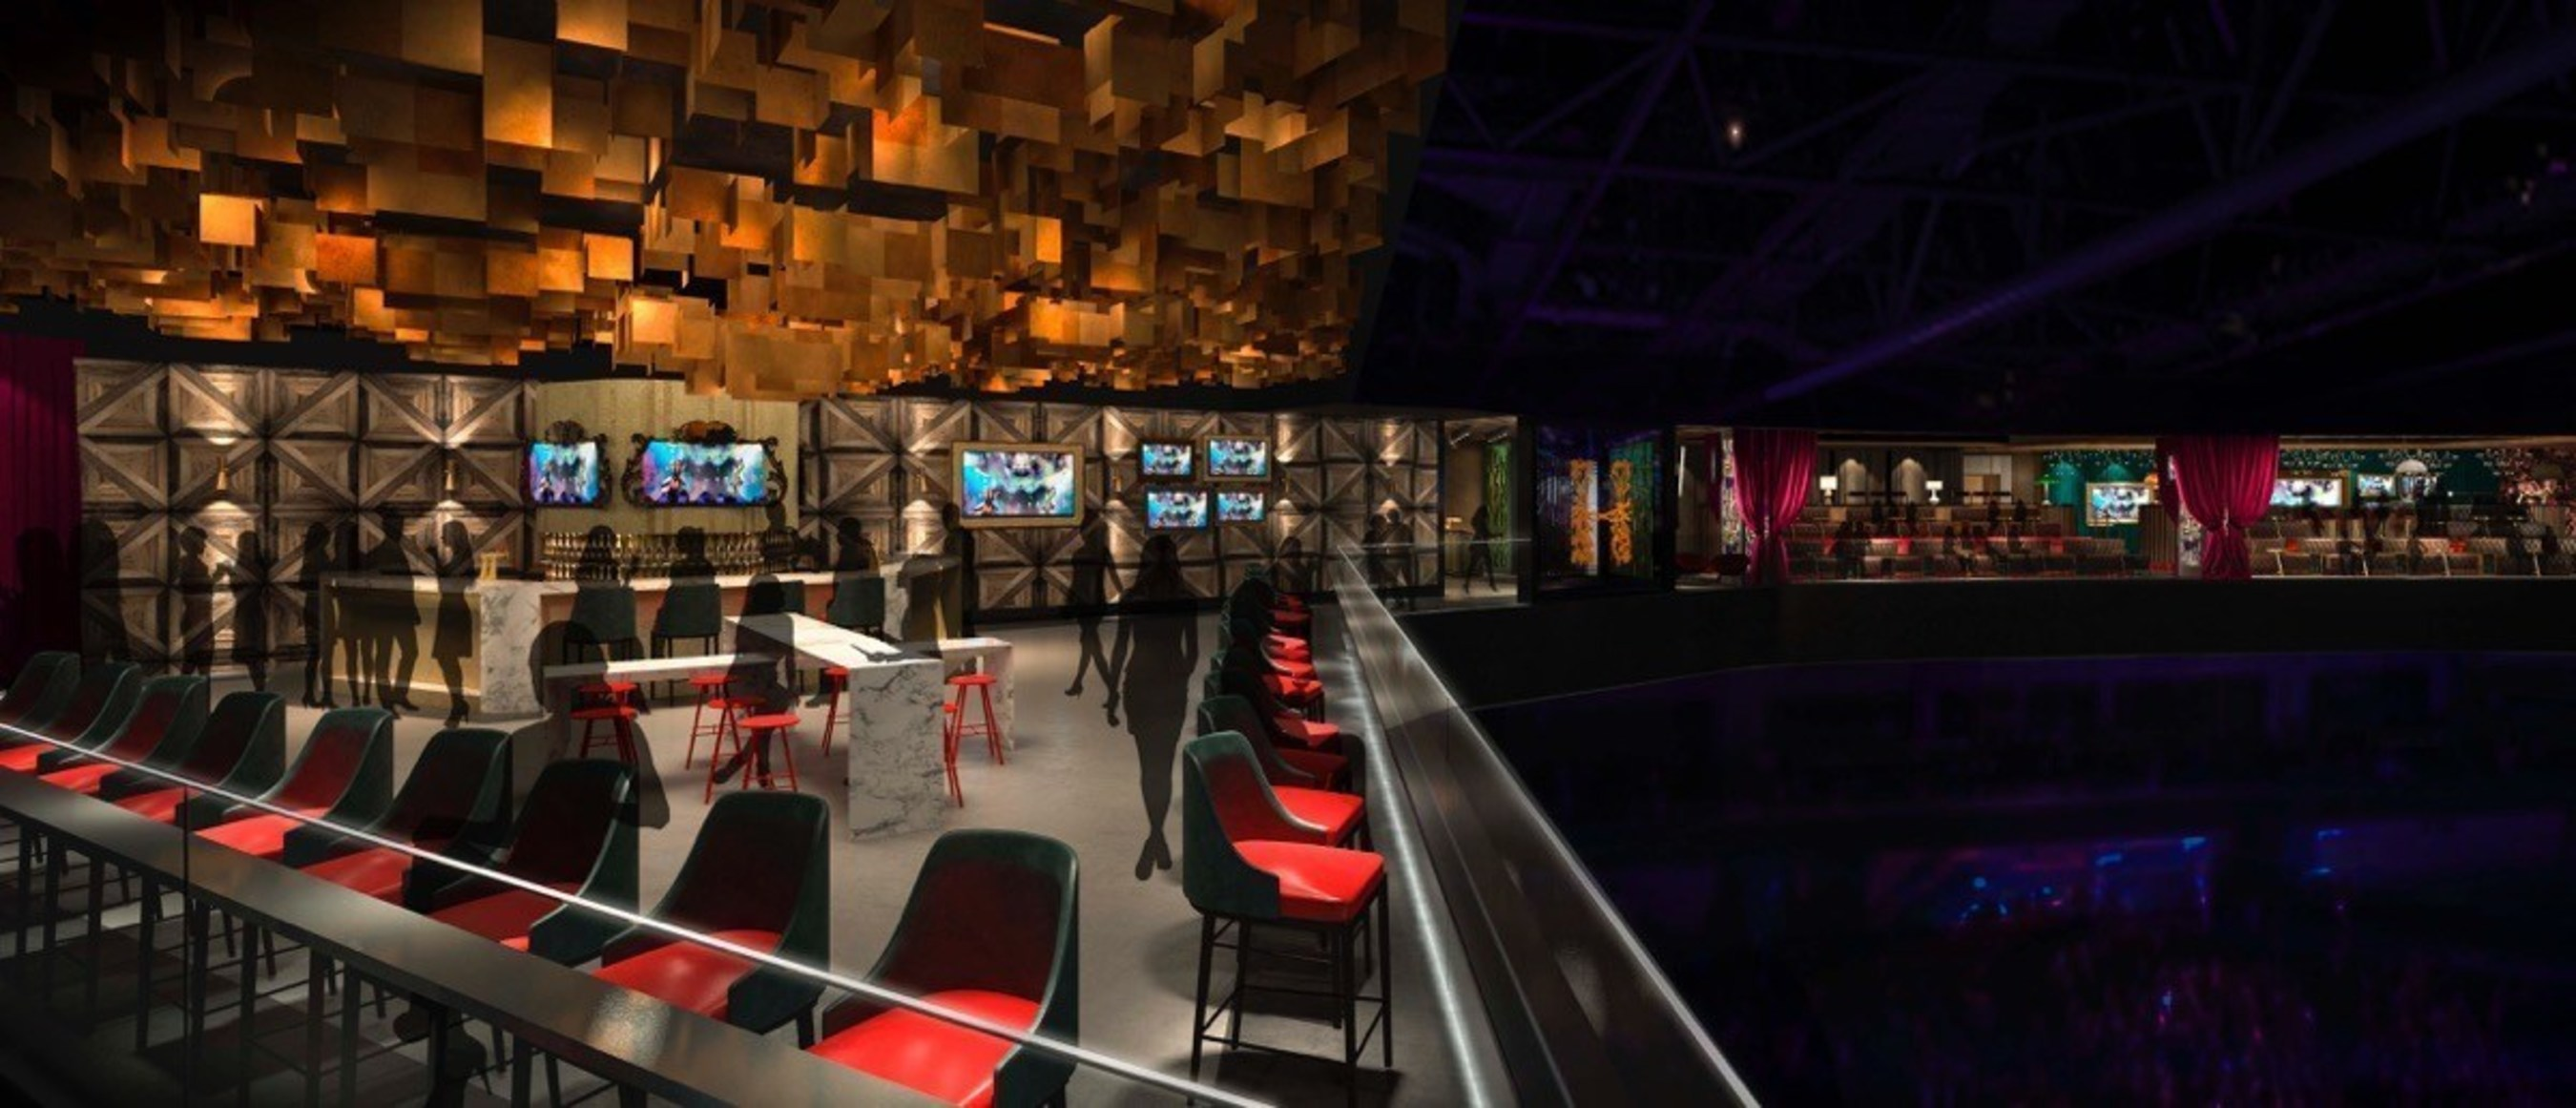 Hyde Lounge at Las Vegas Arena to debut Spring 2016 from sbe, the leading lifestyle hospitality company. sbe and Las Vegas Arena announce revolutionary nightlife, entertainment and sporting viewing experience unlike any other.